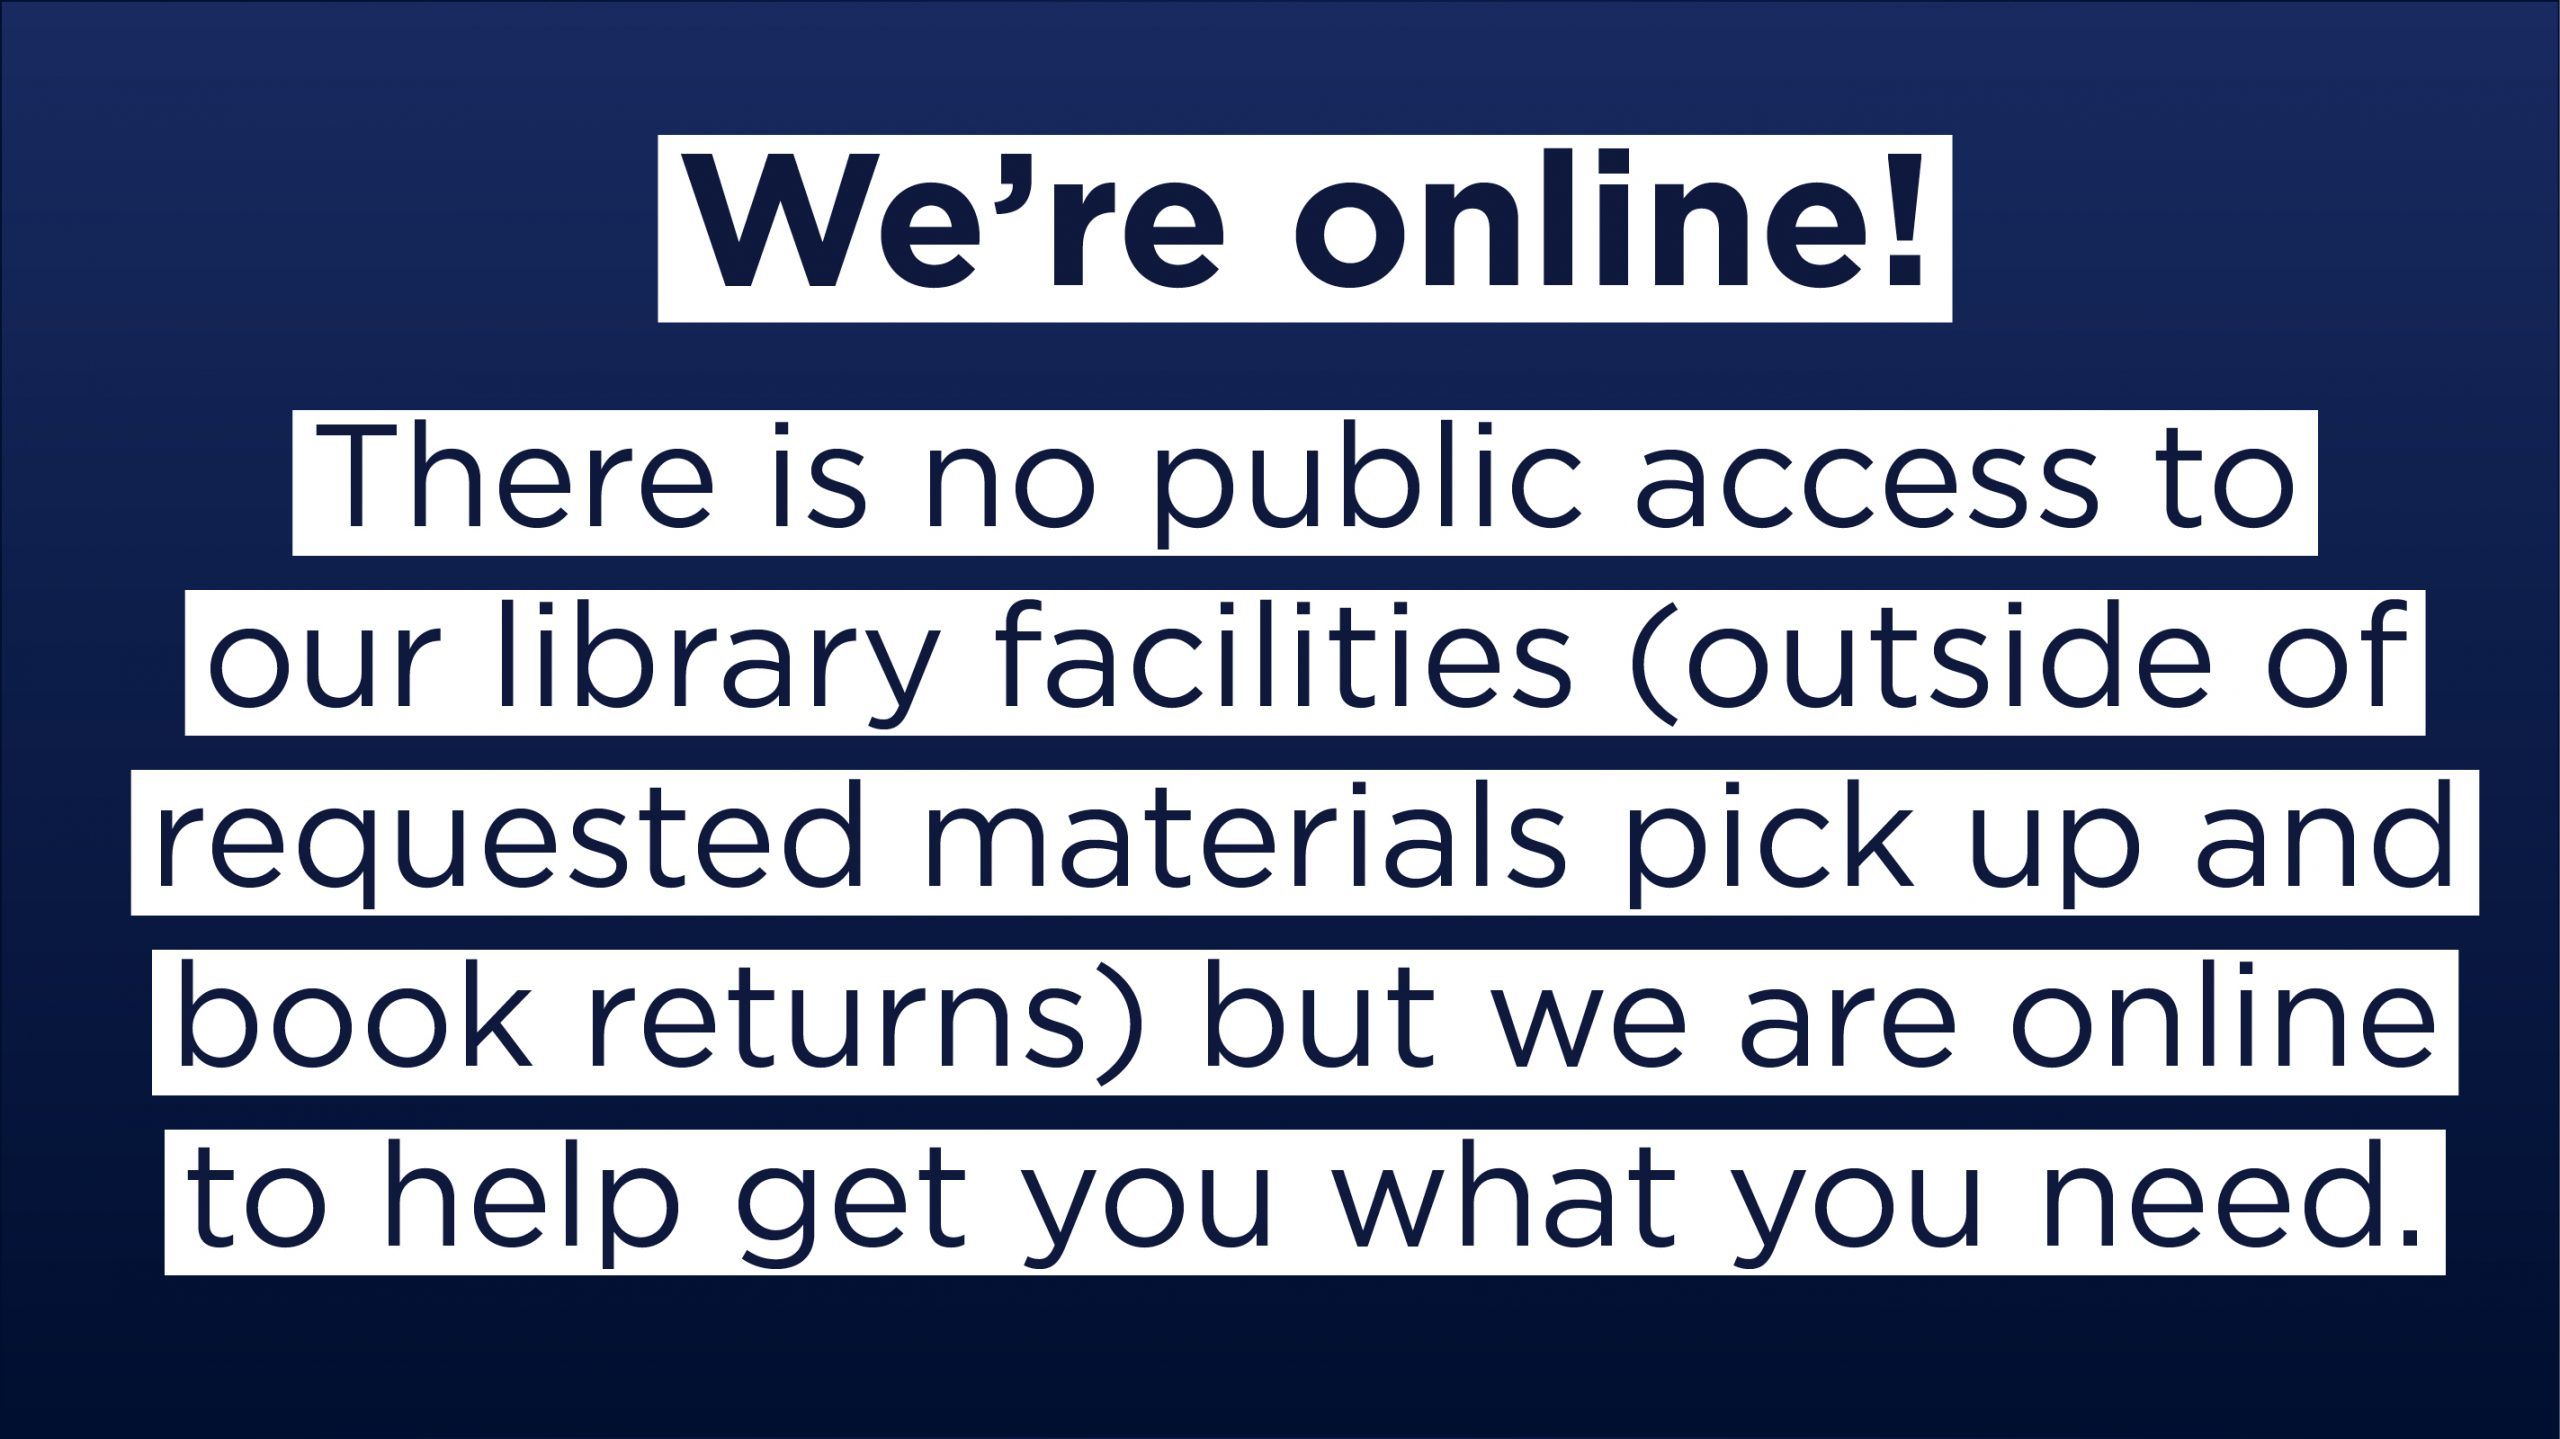 We're online! There is no public access to our library facilities (outside of requested materials pick up and book returns) but we are online to help get you what you need.